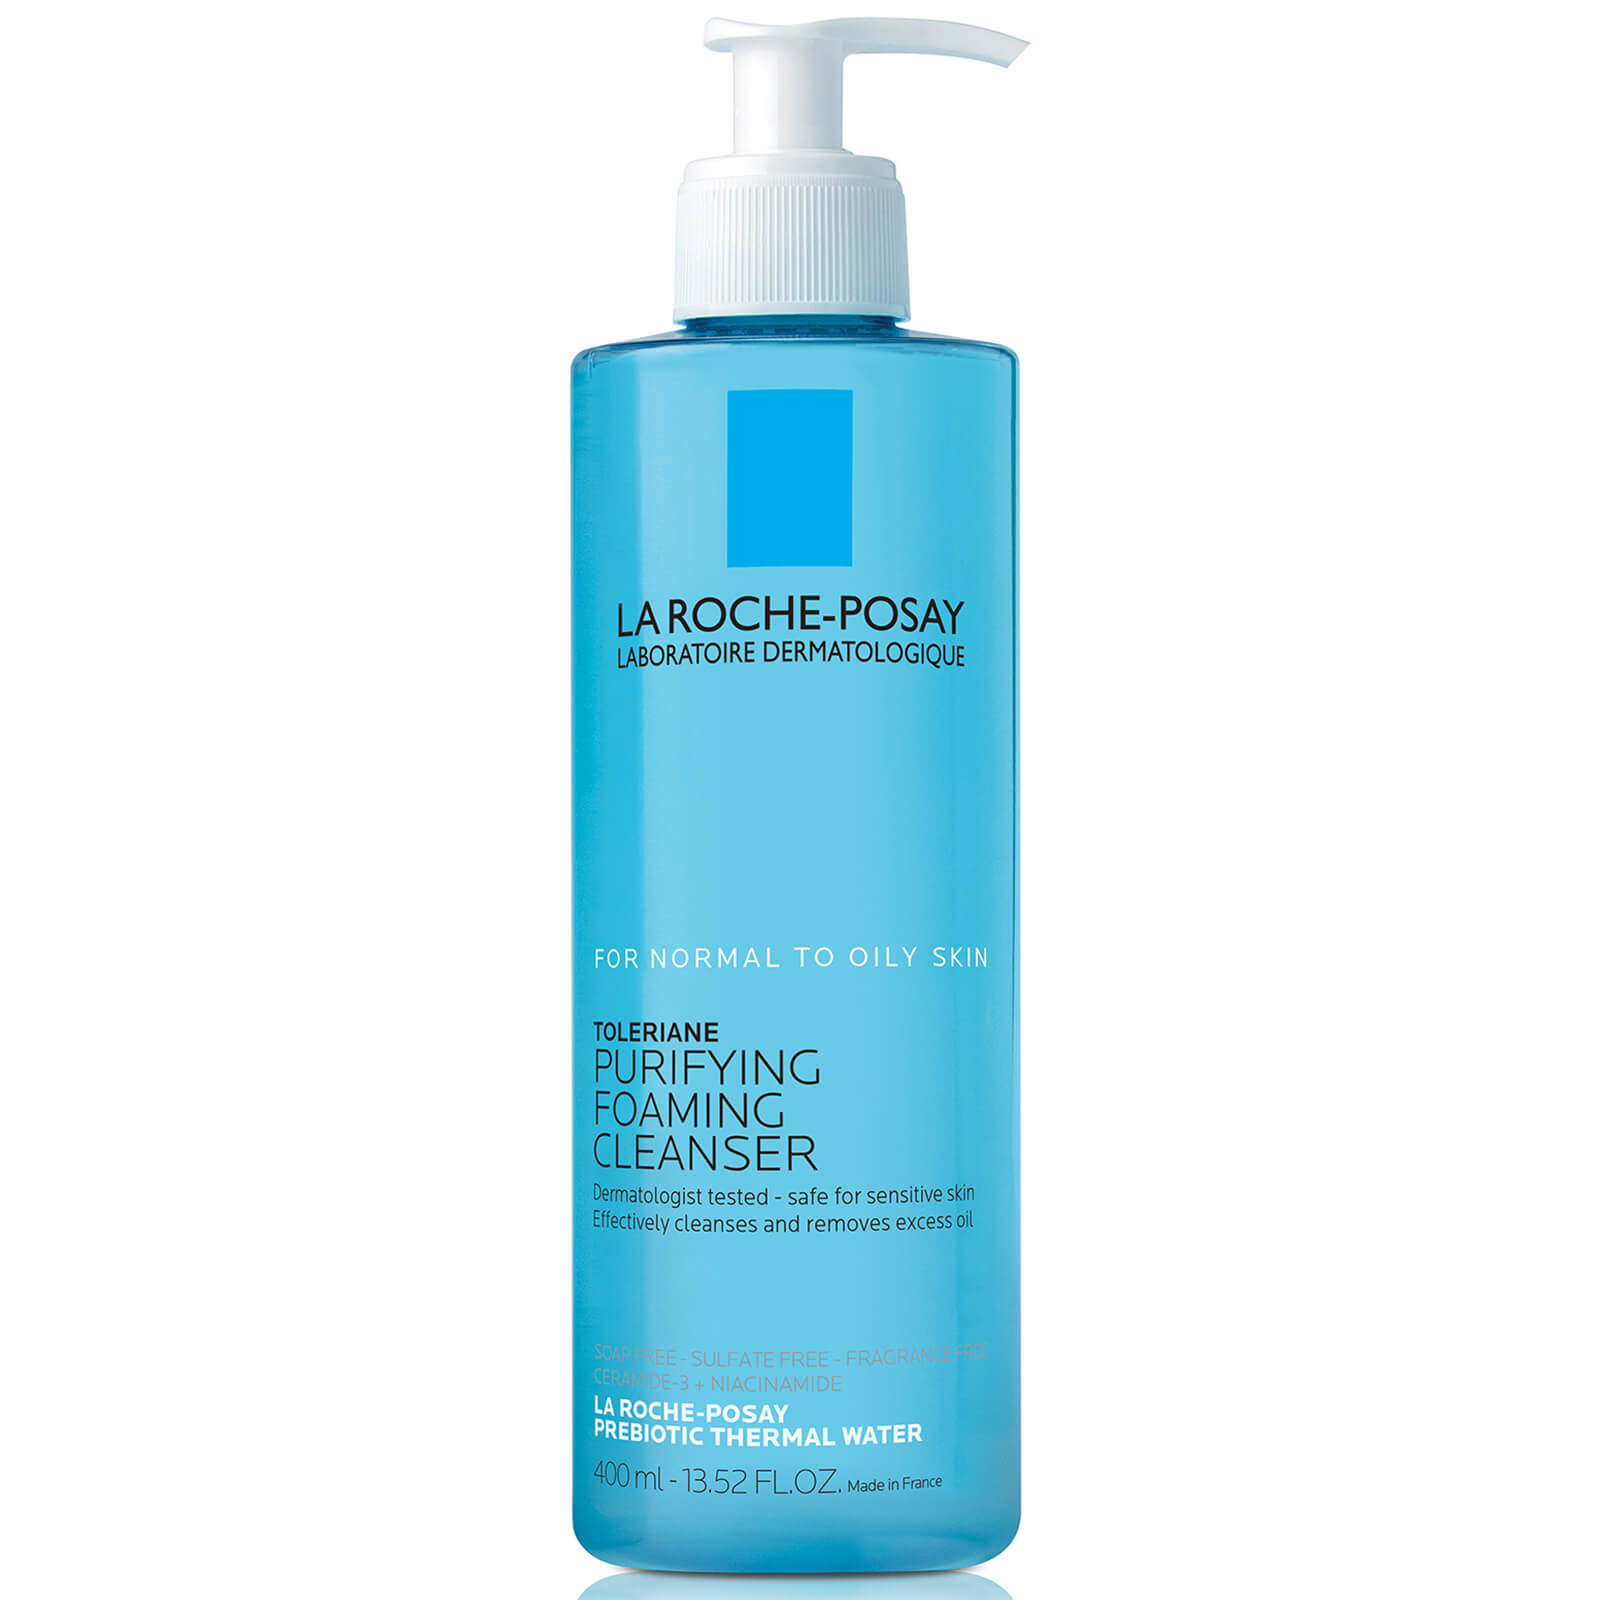 La Roche-Posay Toleriane Purifying Foaming Face Wash Cleanser for Normal to Oily Sensitive Skin, 13.5 Fl. Oz.